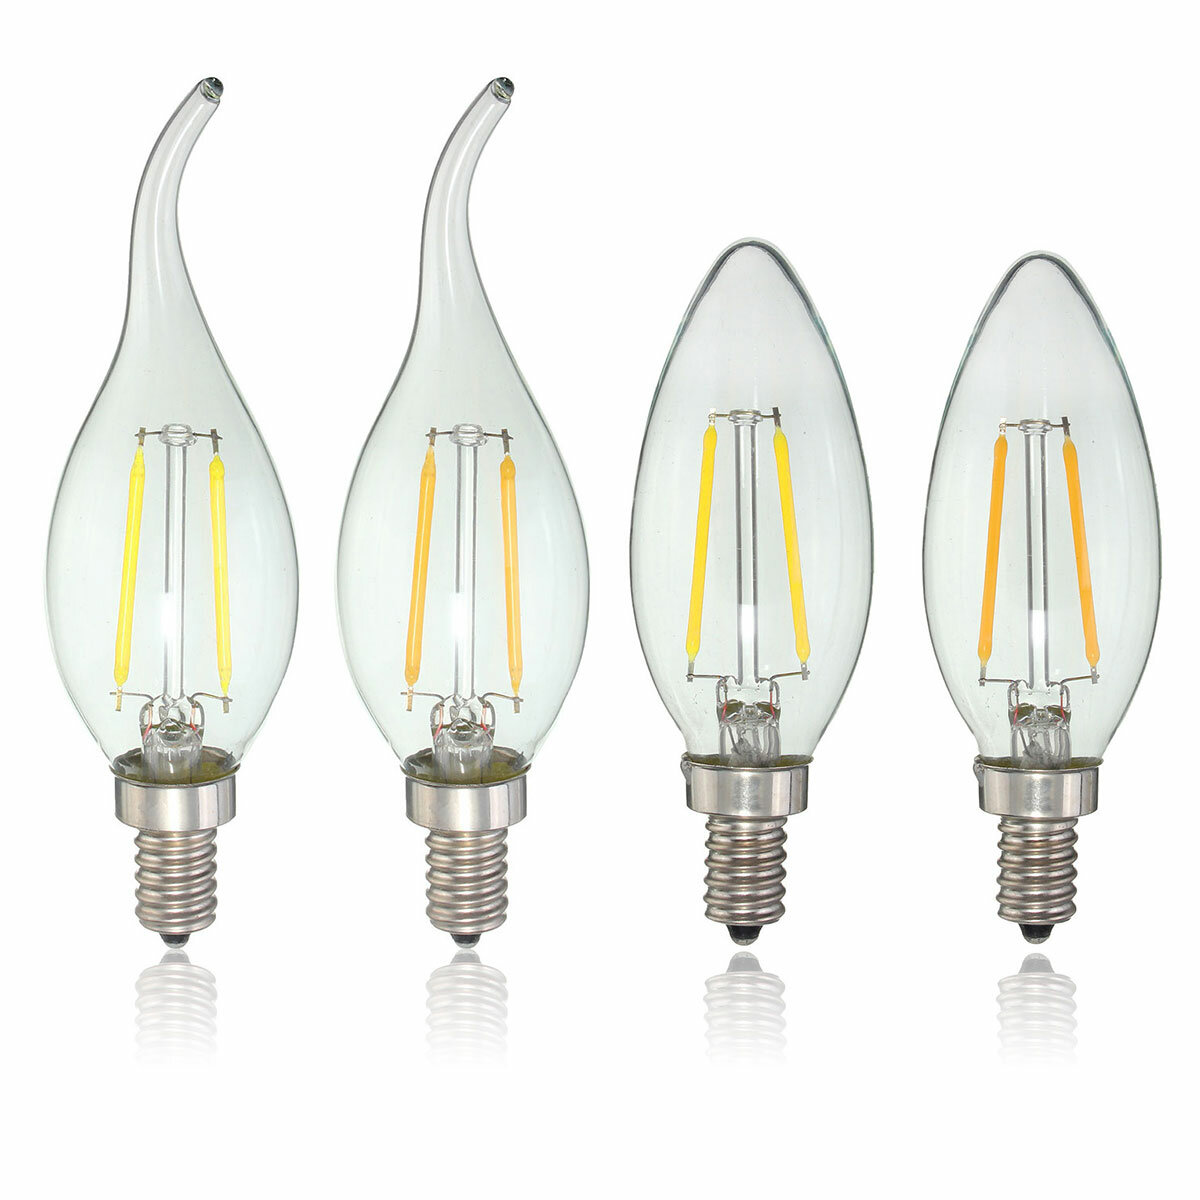 E12 2w Cob Edison Filament Bulb Led Candle Light Lamp Ac110v